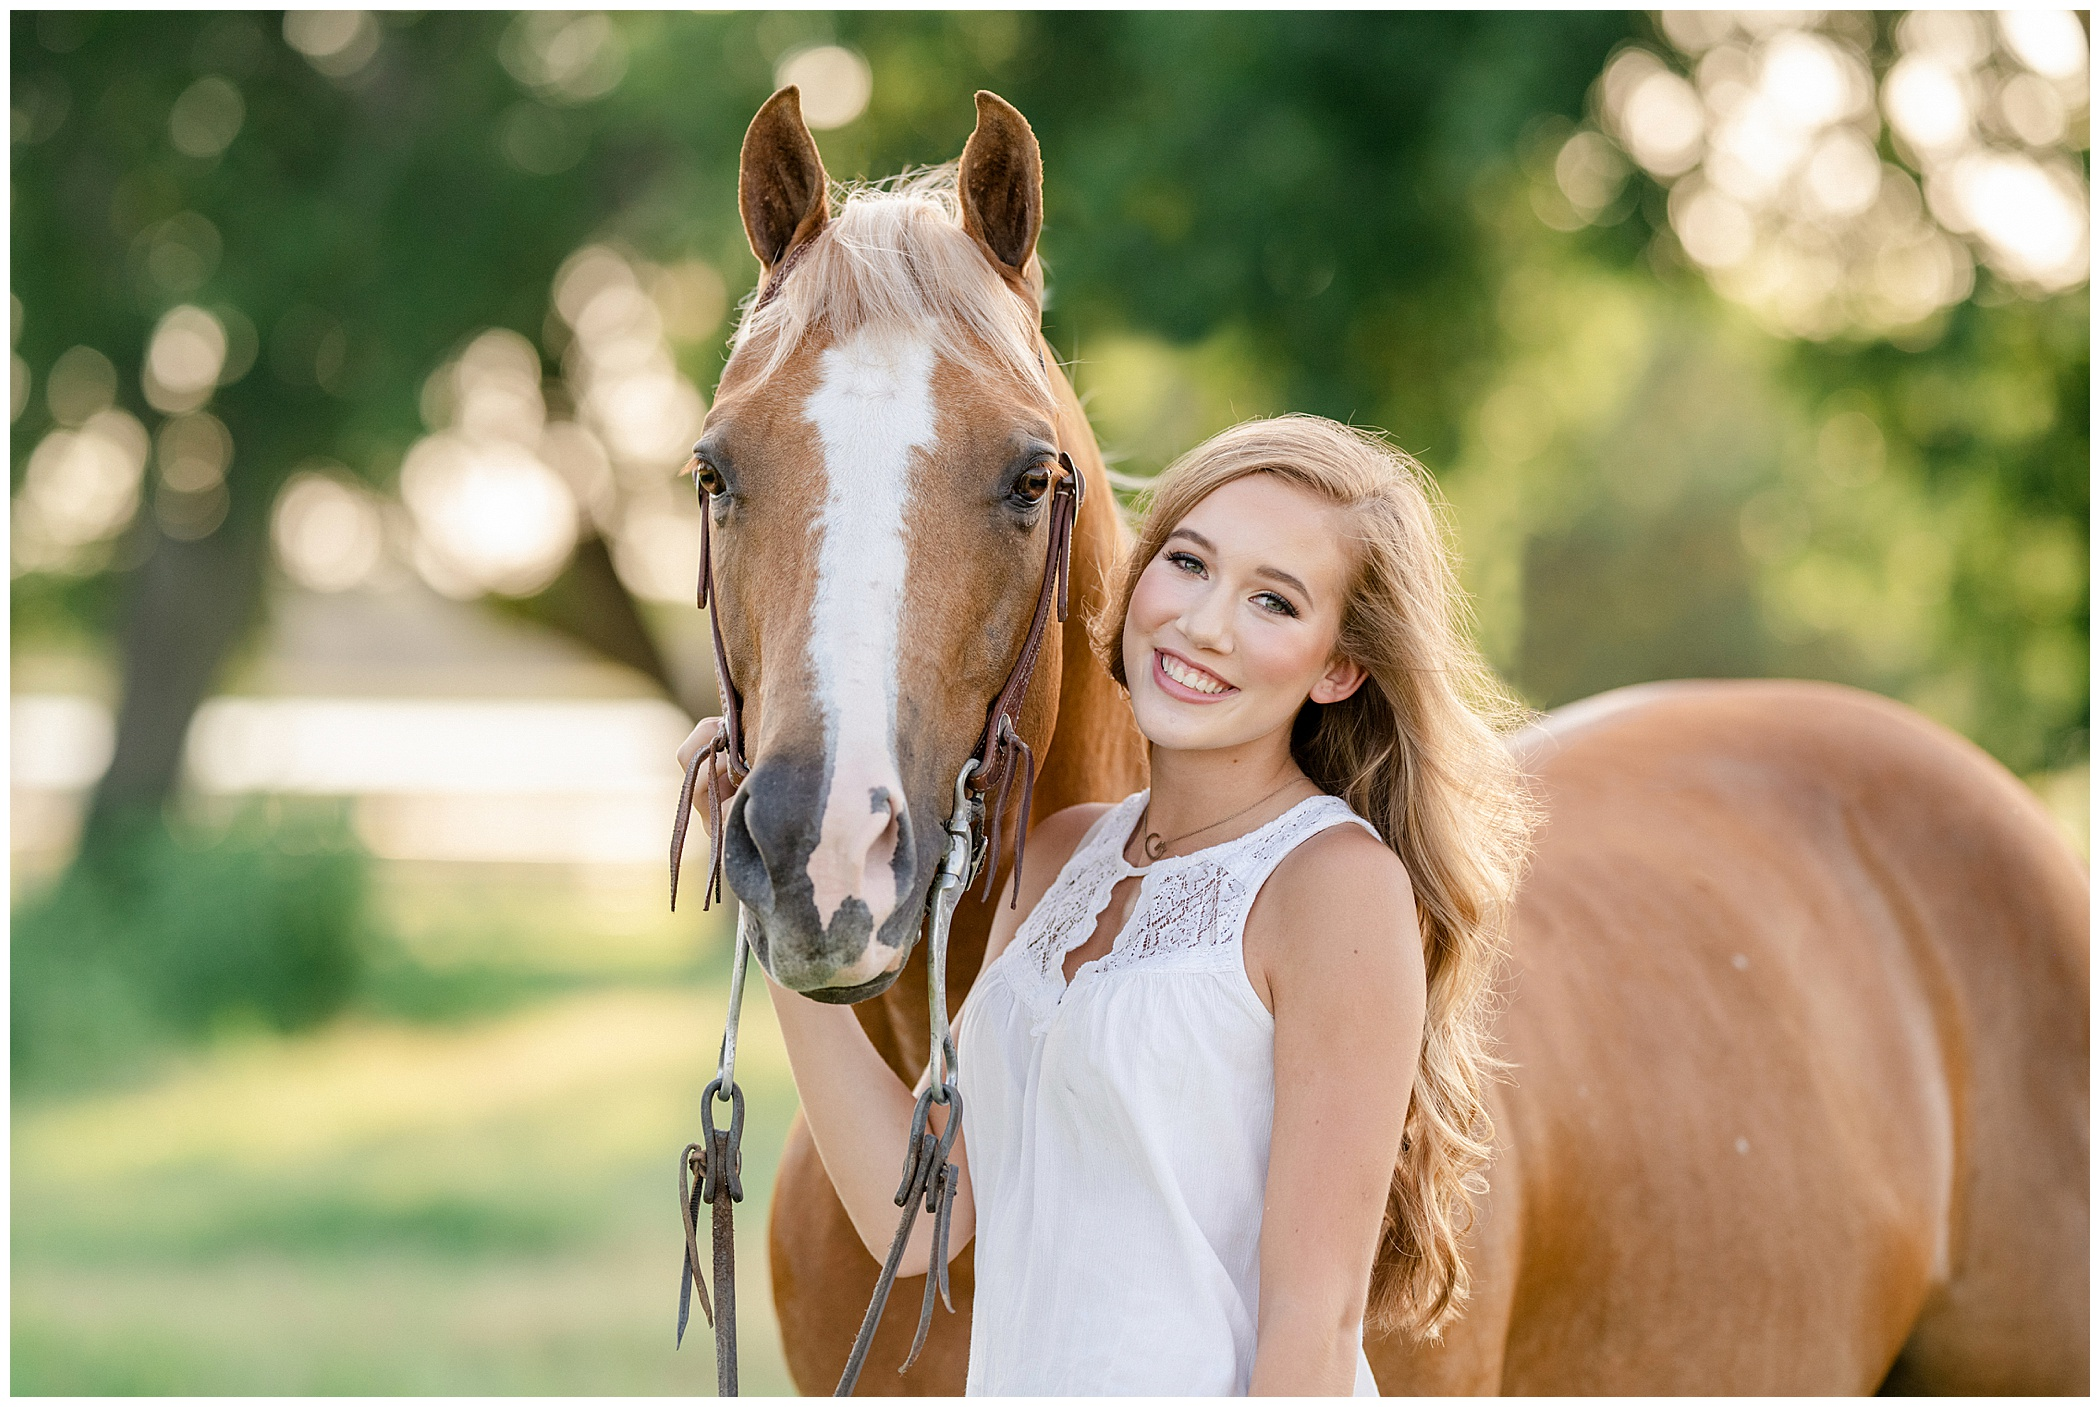 Young blonde girl with palomino horse in a field